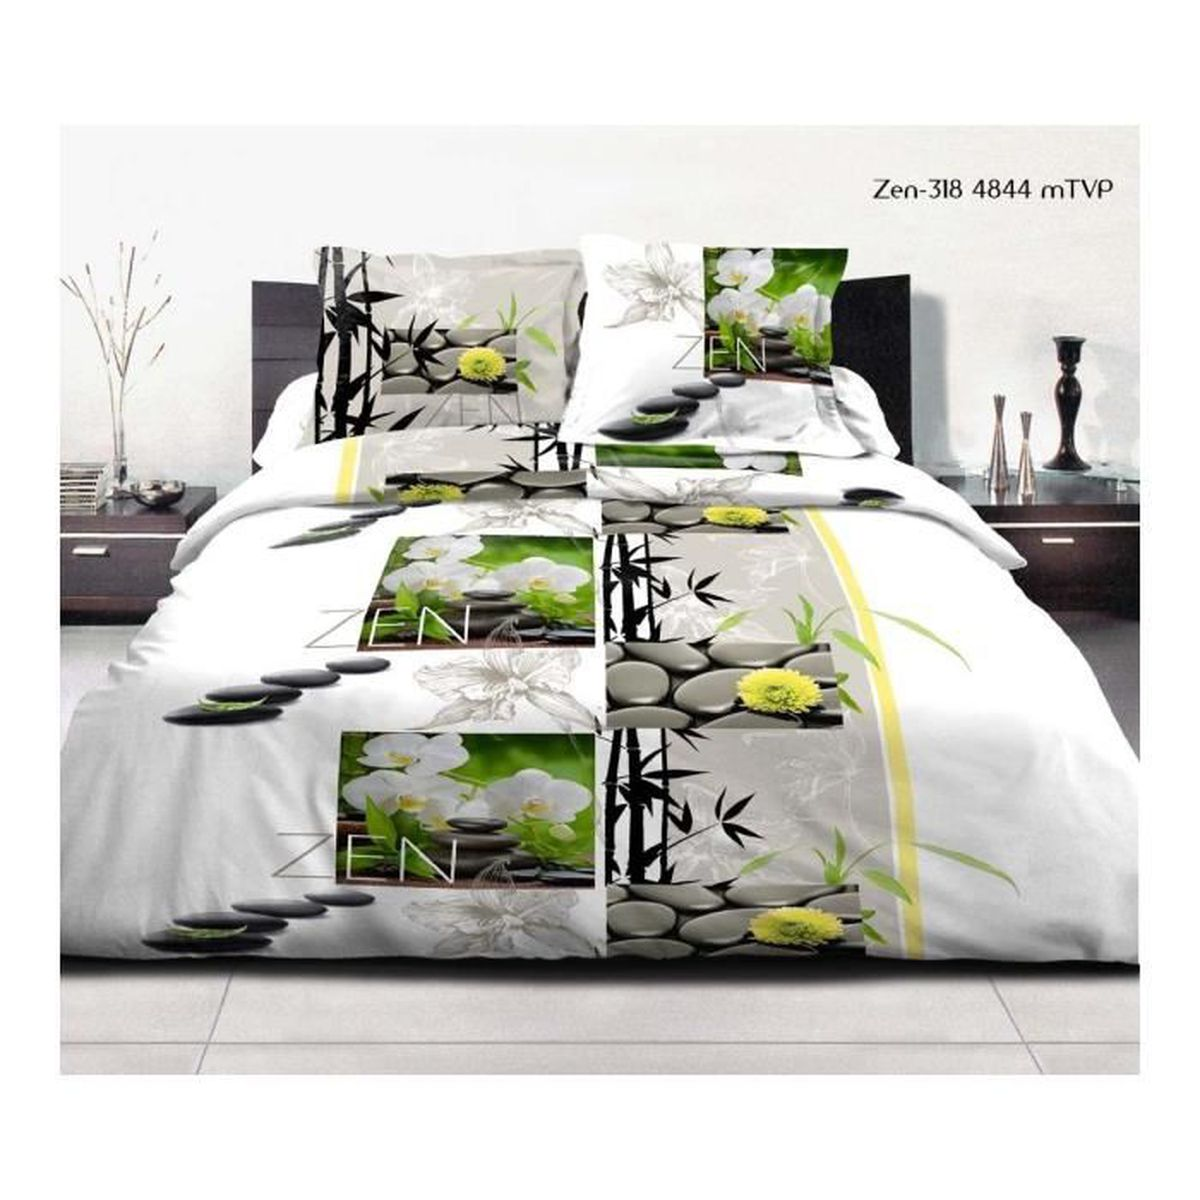 parure 3 pieces housse de couette zen multicolore achat vente parure de drap cdiscount. Black Bedroom Furniture Sets. Home Design Ideas